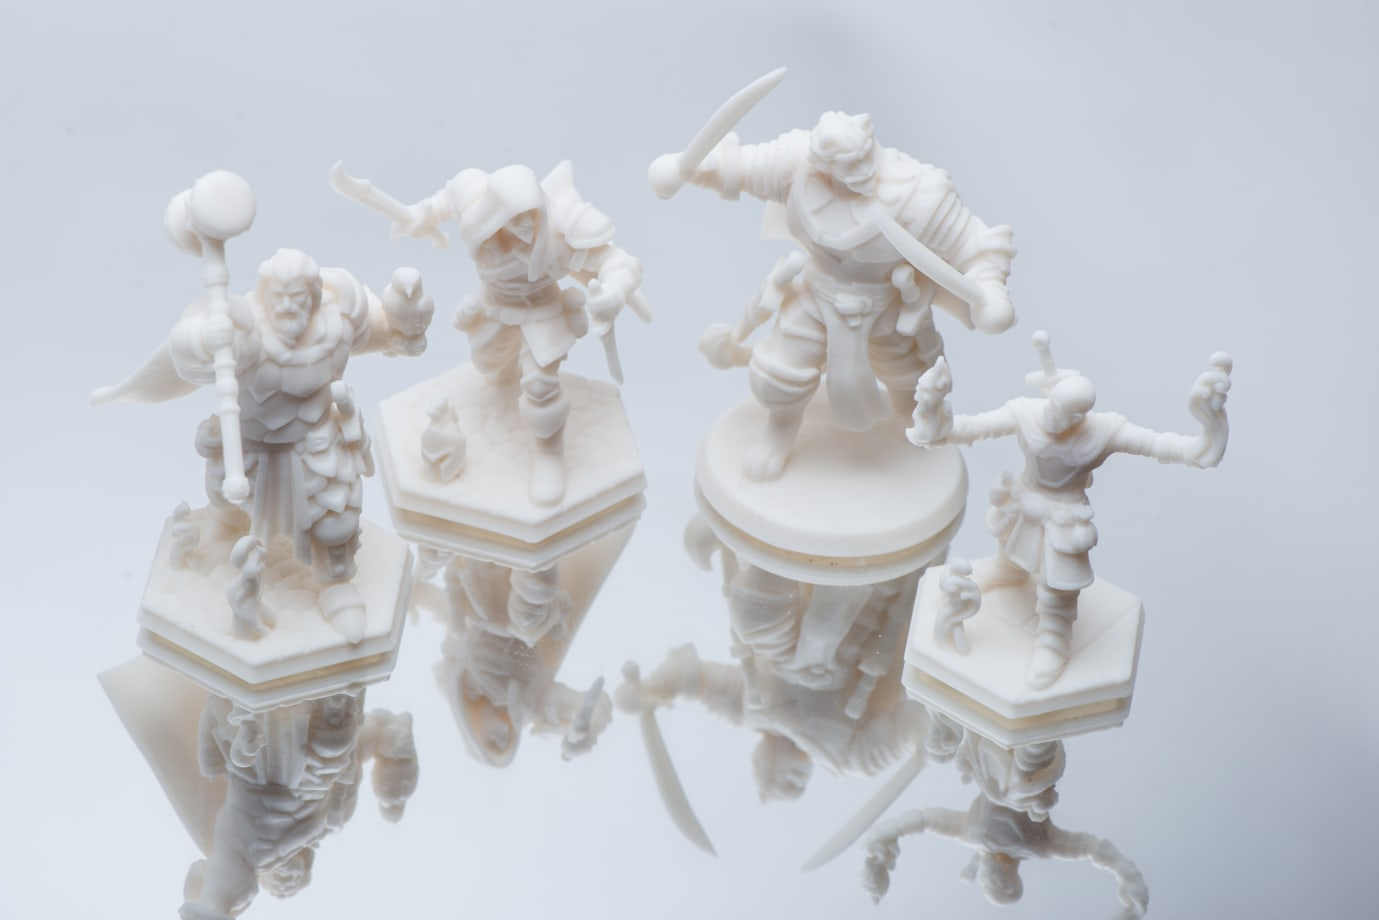 Minature model Heroes forge 4